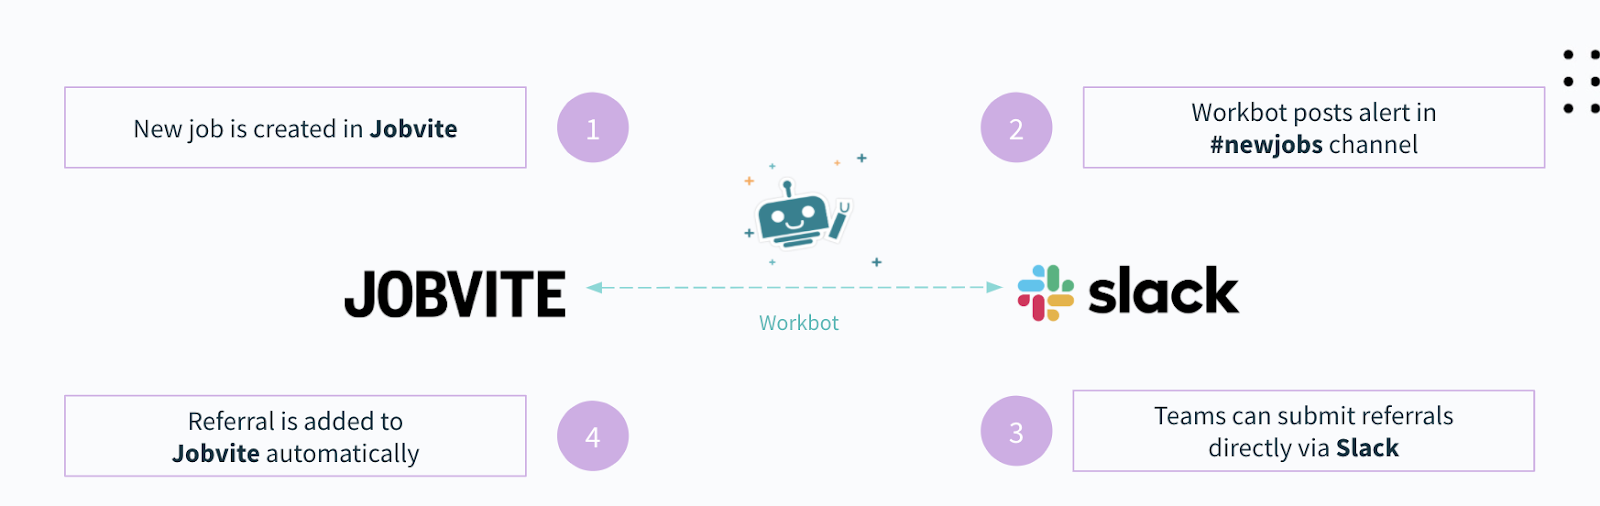 A workflow automation that instantly posts new jobs in a specific Slack channel